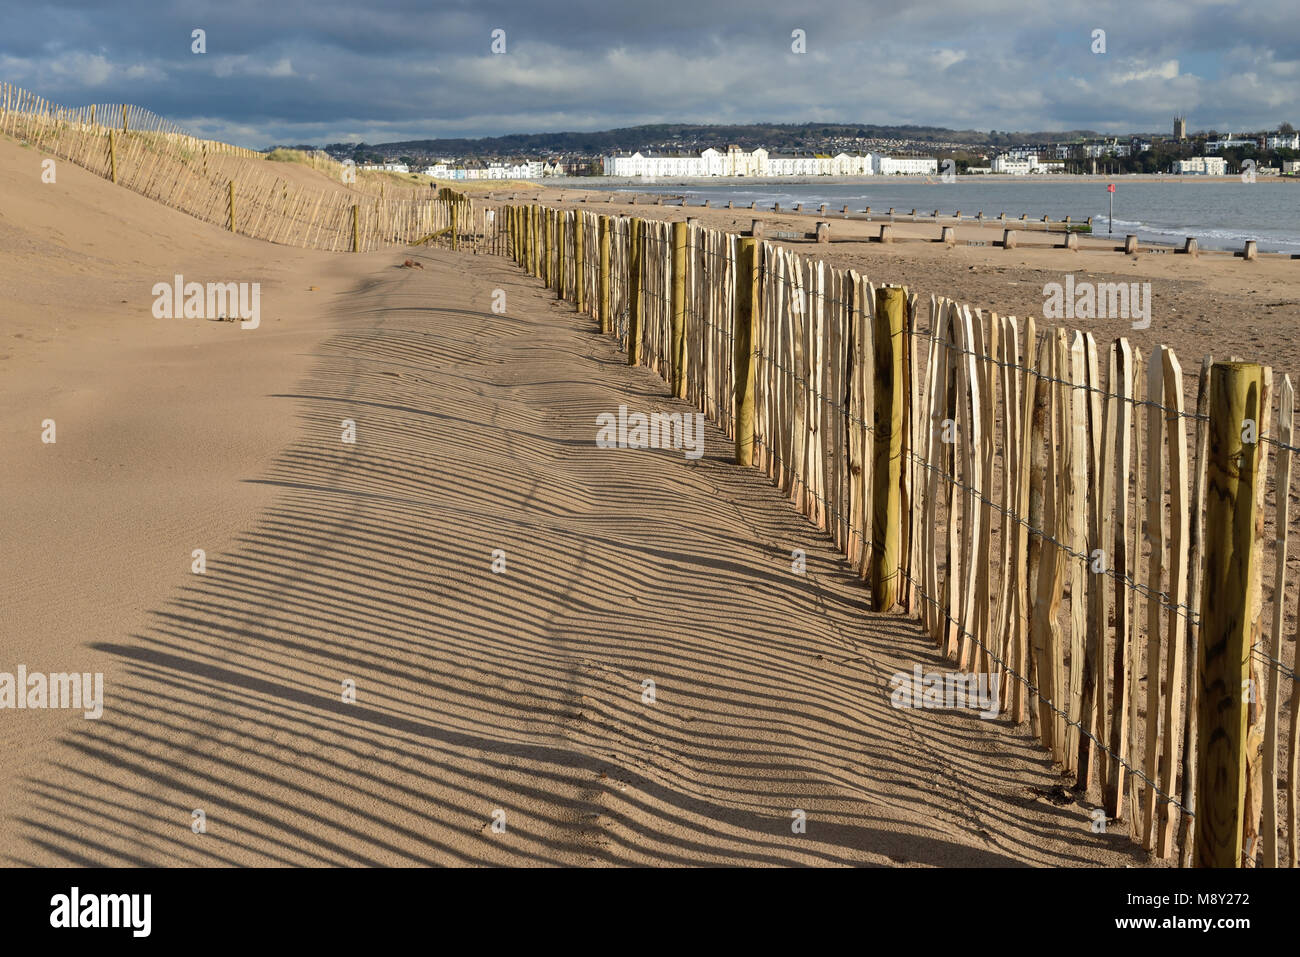 Fencing on sand dunes at Dawlish Warren nature reserve (looking towards Exmouth). - Stock Image